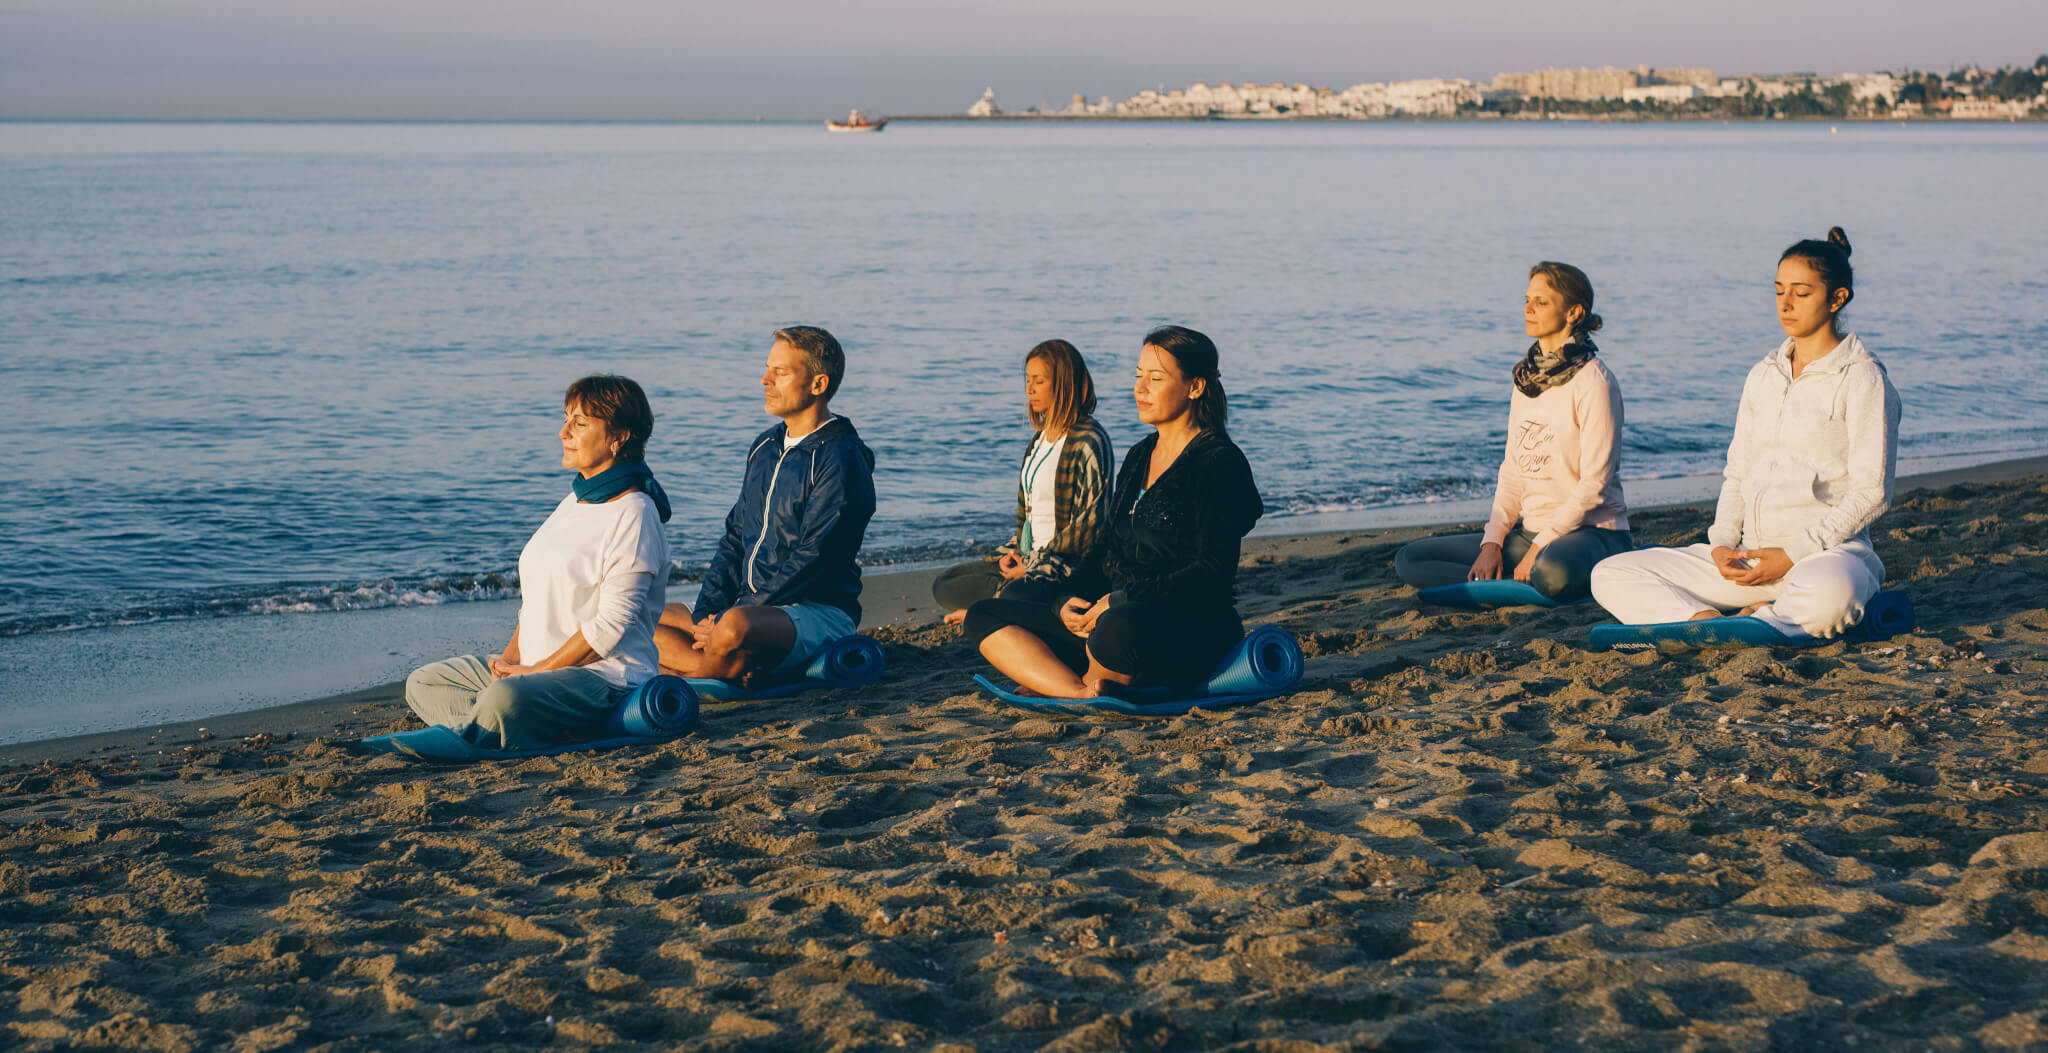 Buchinger Wilhelmi, Fasten, Heilfasten, Fasting, Health, Integrative Medicine, Marbella, Andalusia, Beach, Strand, Meditation, Morning Meditation, Morgensmeditation,